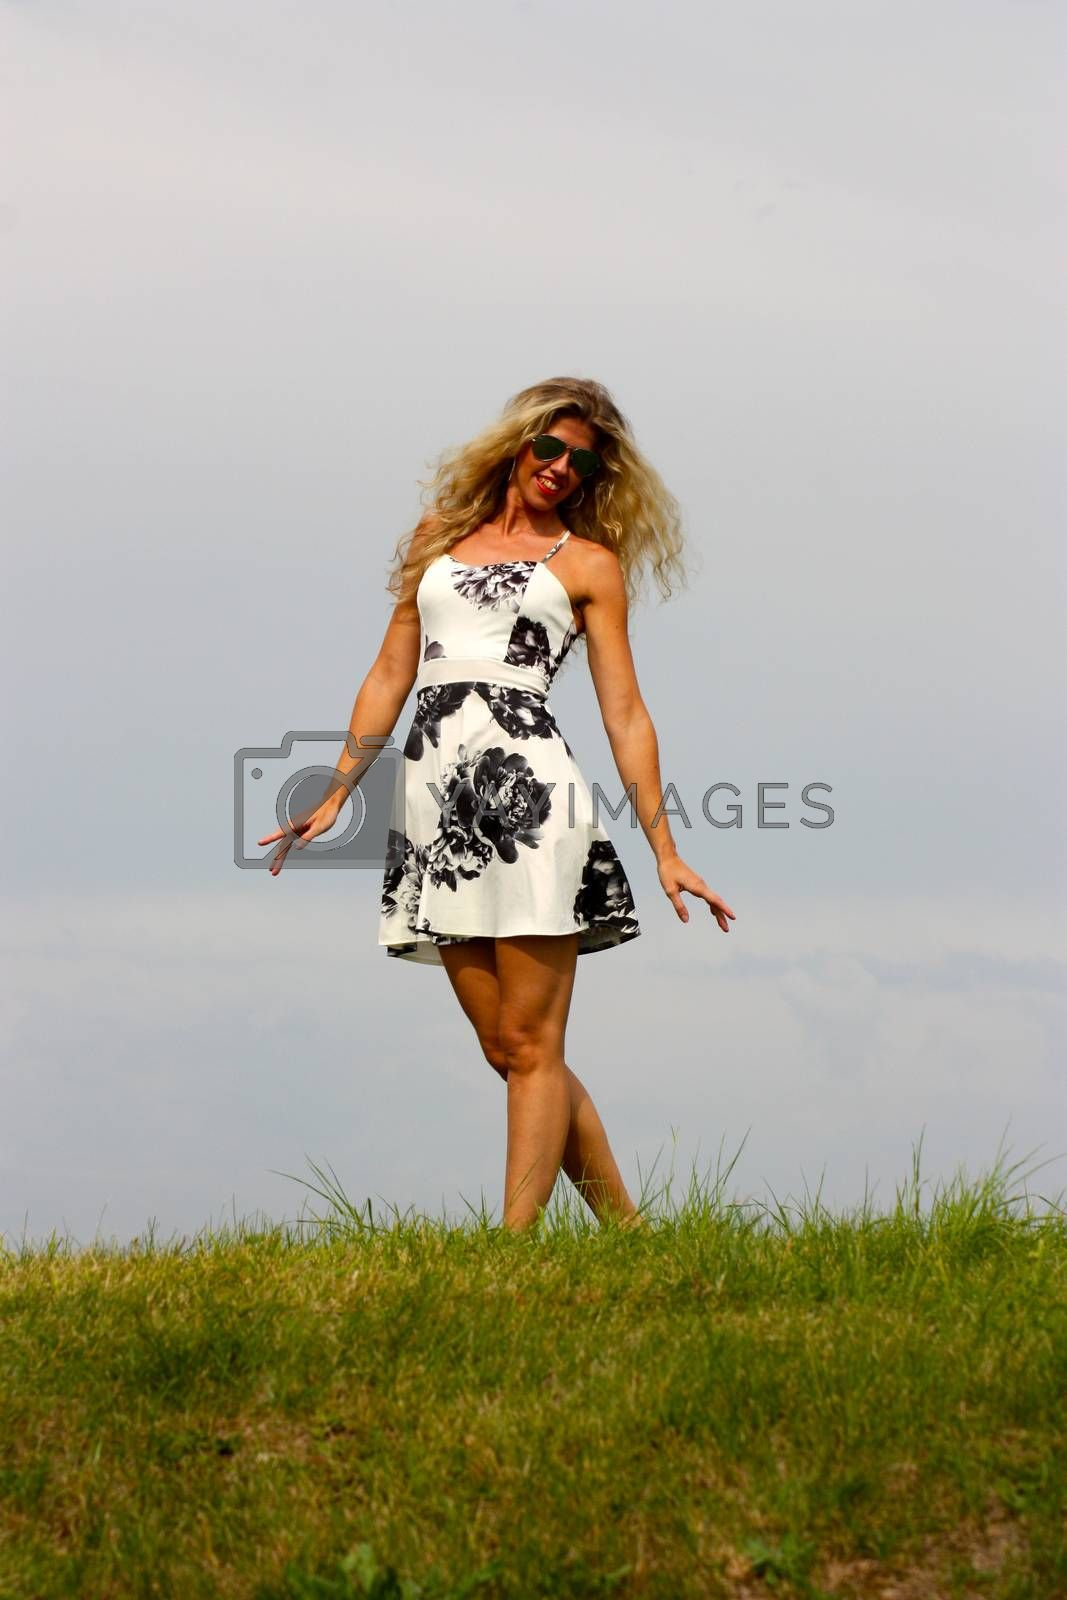 blonde in white with black flowers dress and sunglasses stands on green grass